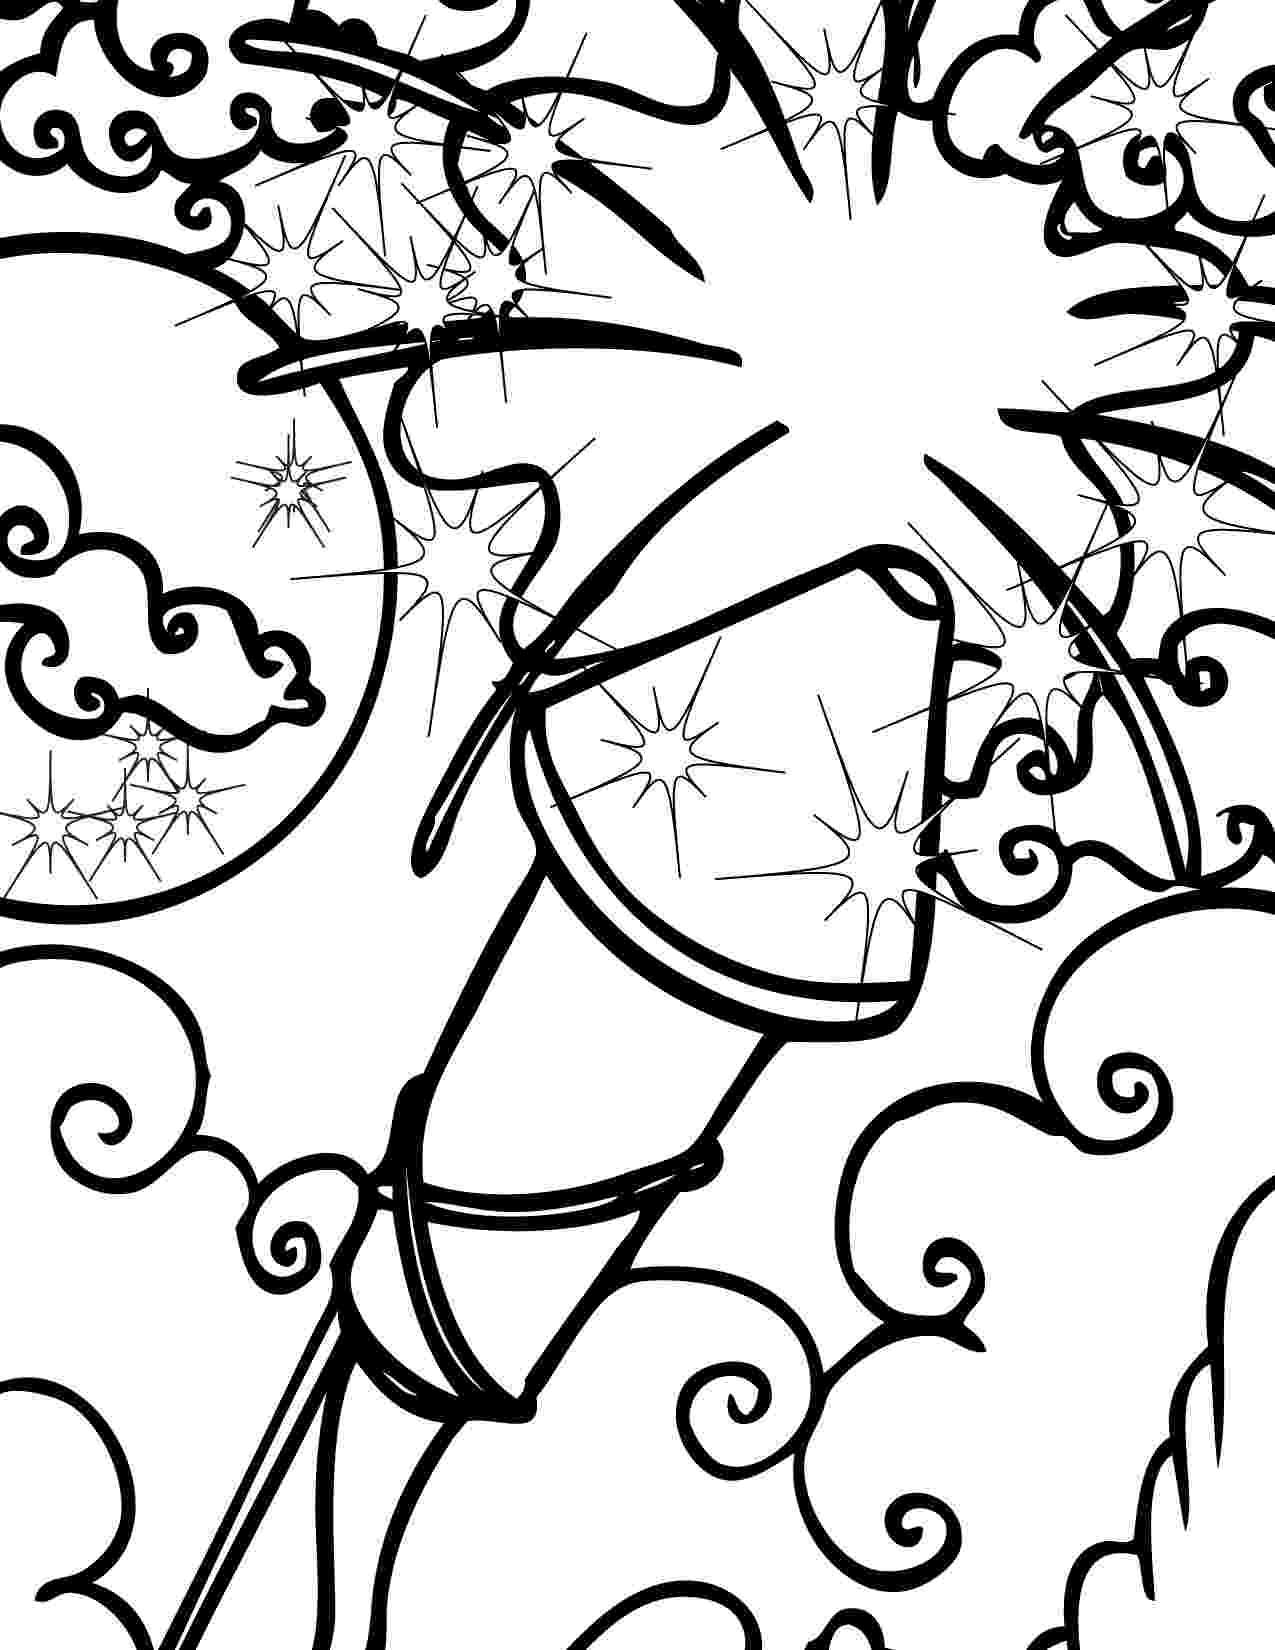 fireworks coloring page free printable fireworks coloring pages for kids coloring page fireworks